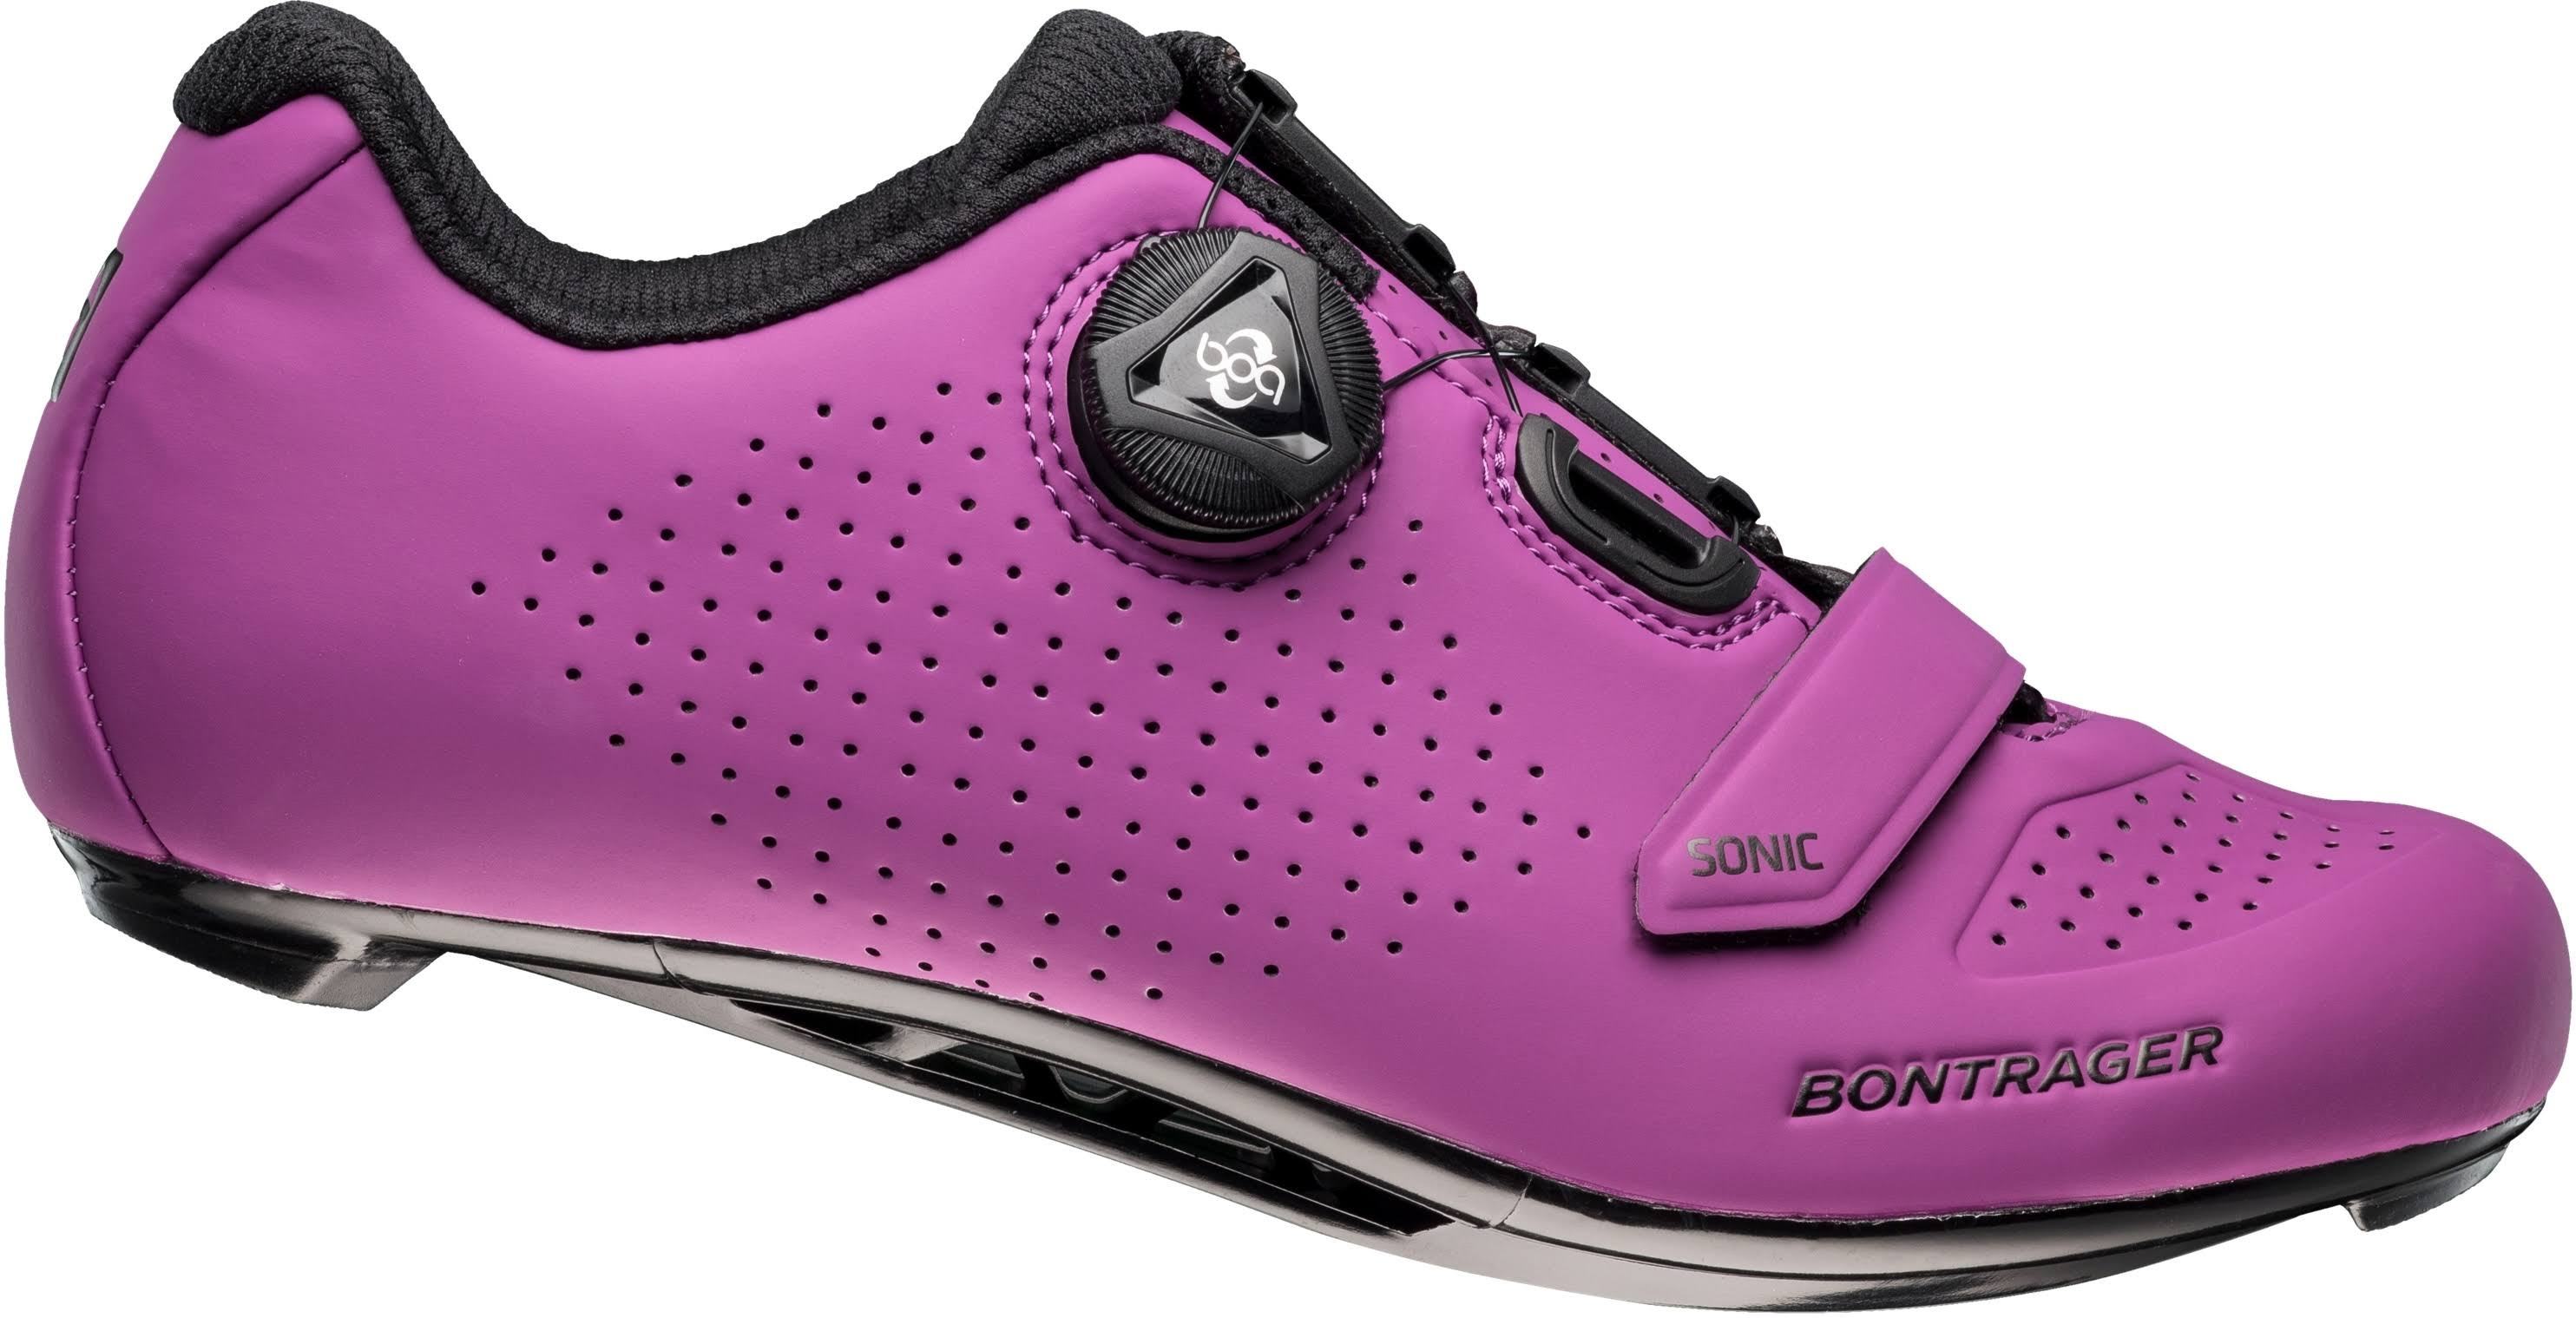 Bontrager Sonic Women's Road Shoes - Purple Lotus, 40 EU